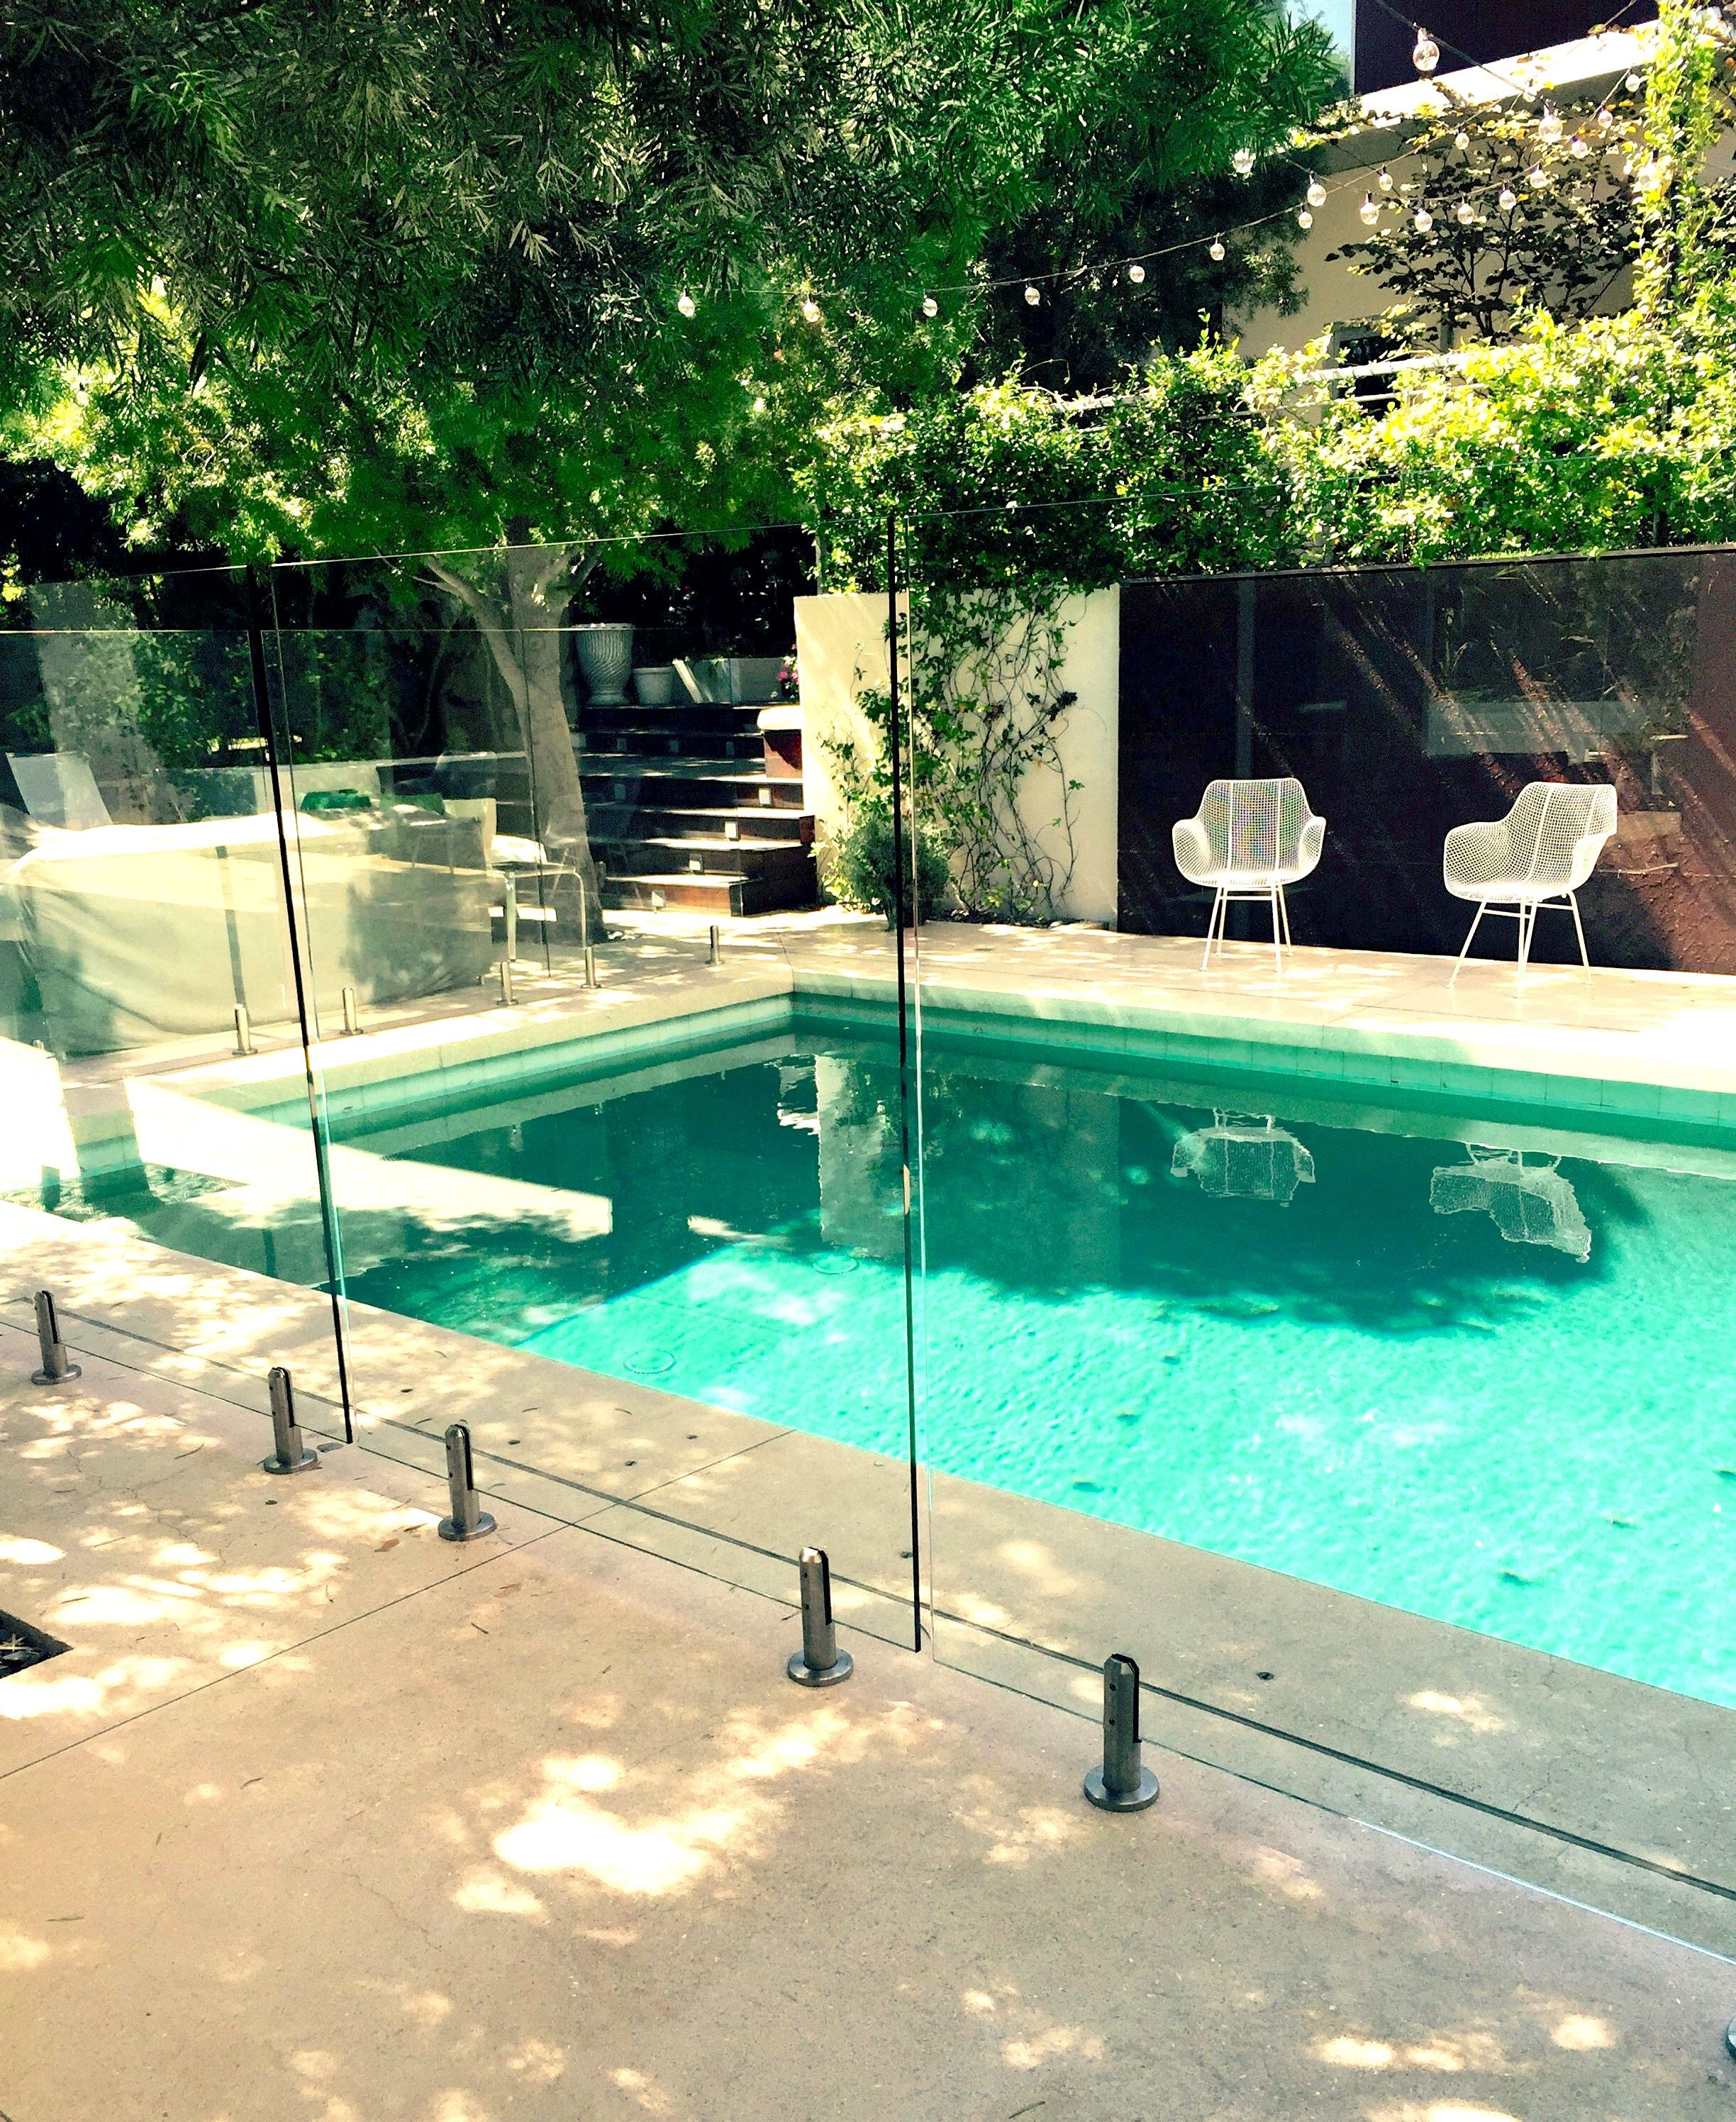 A Glass Pool Fence Is Perfect For Small Backyards Great Way To Maximize Your Space Pool Fence Glass Pool Fencing Pool Safety Fence